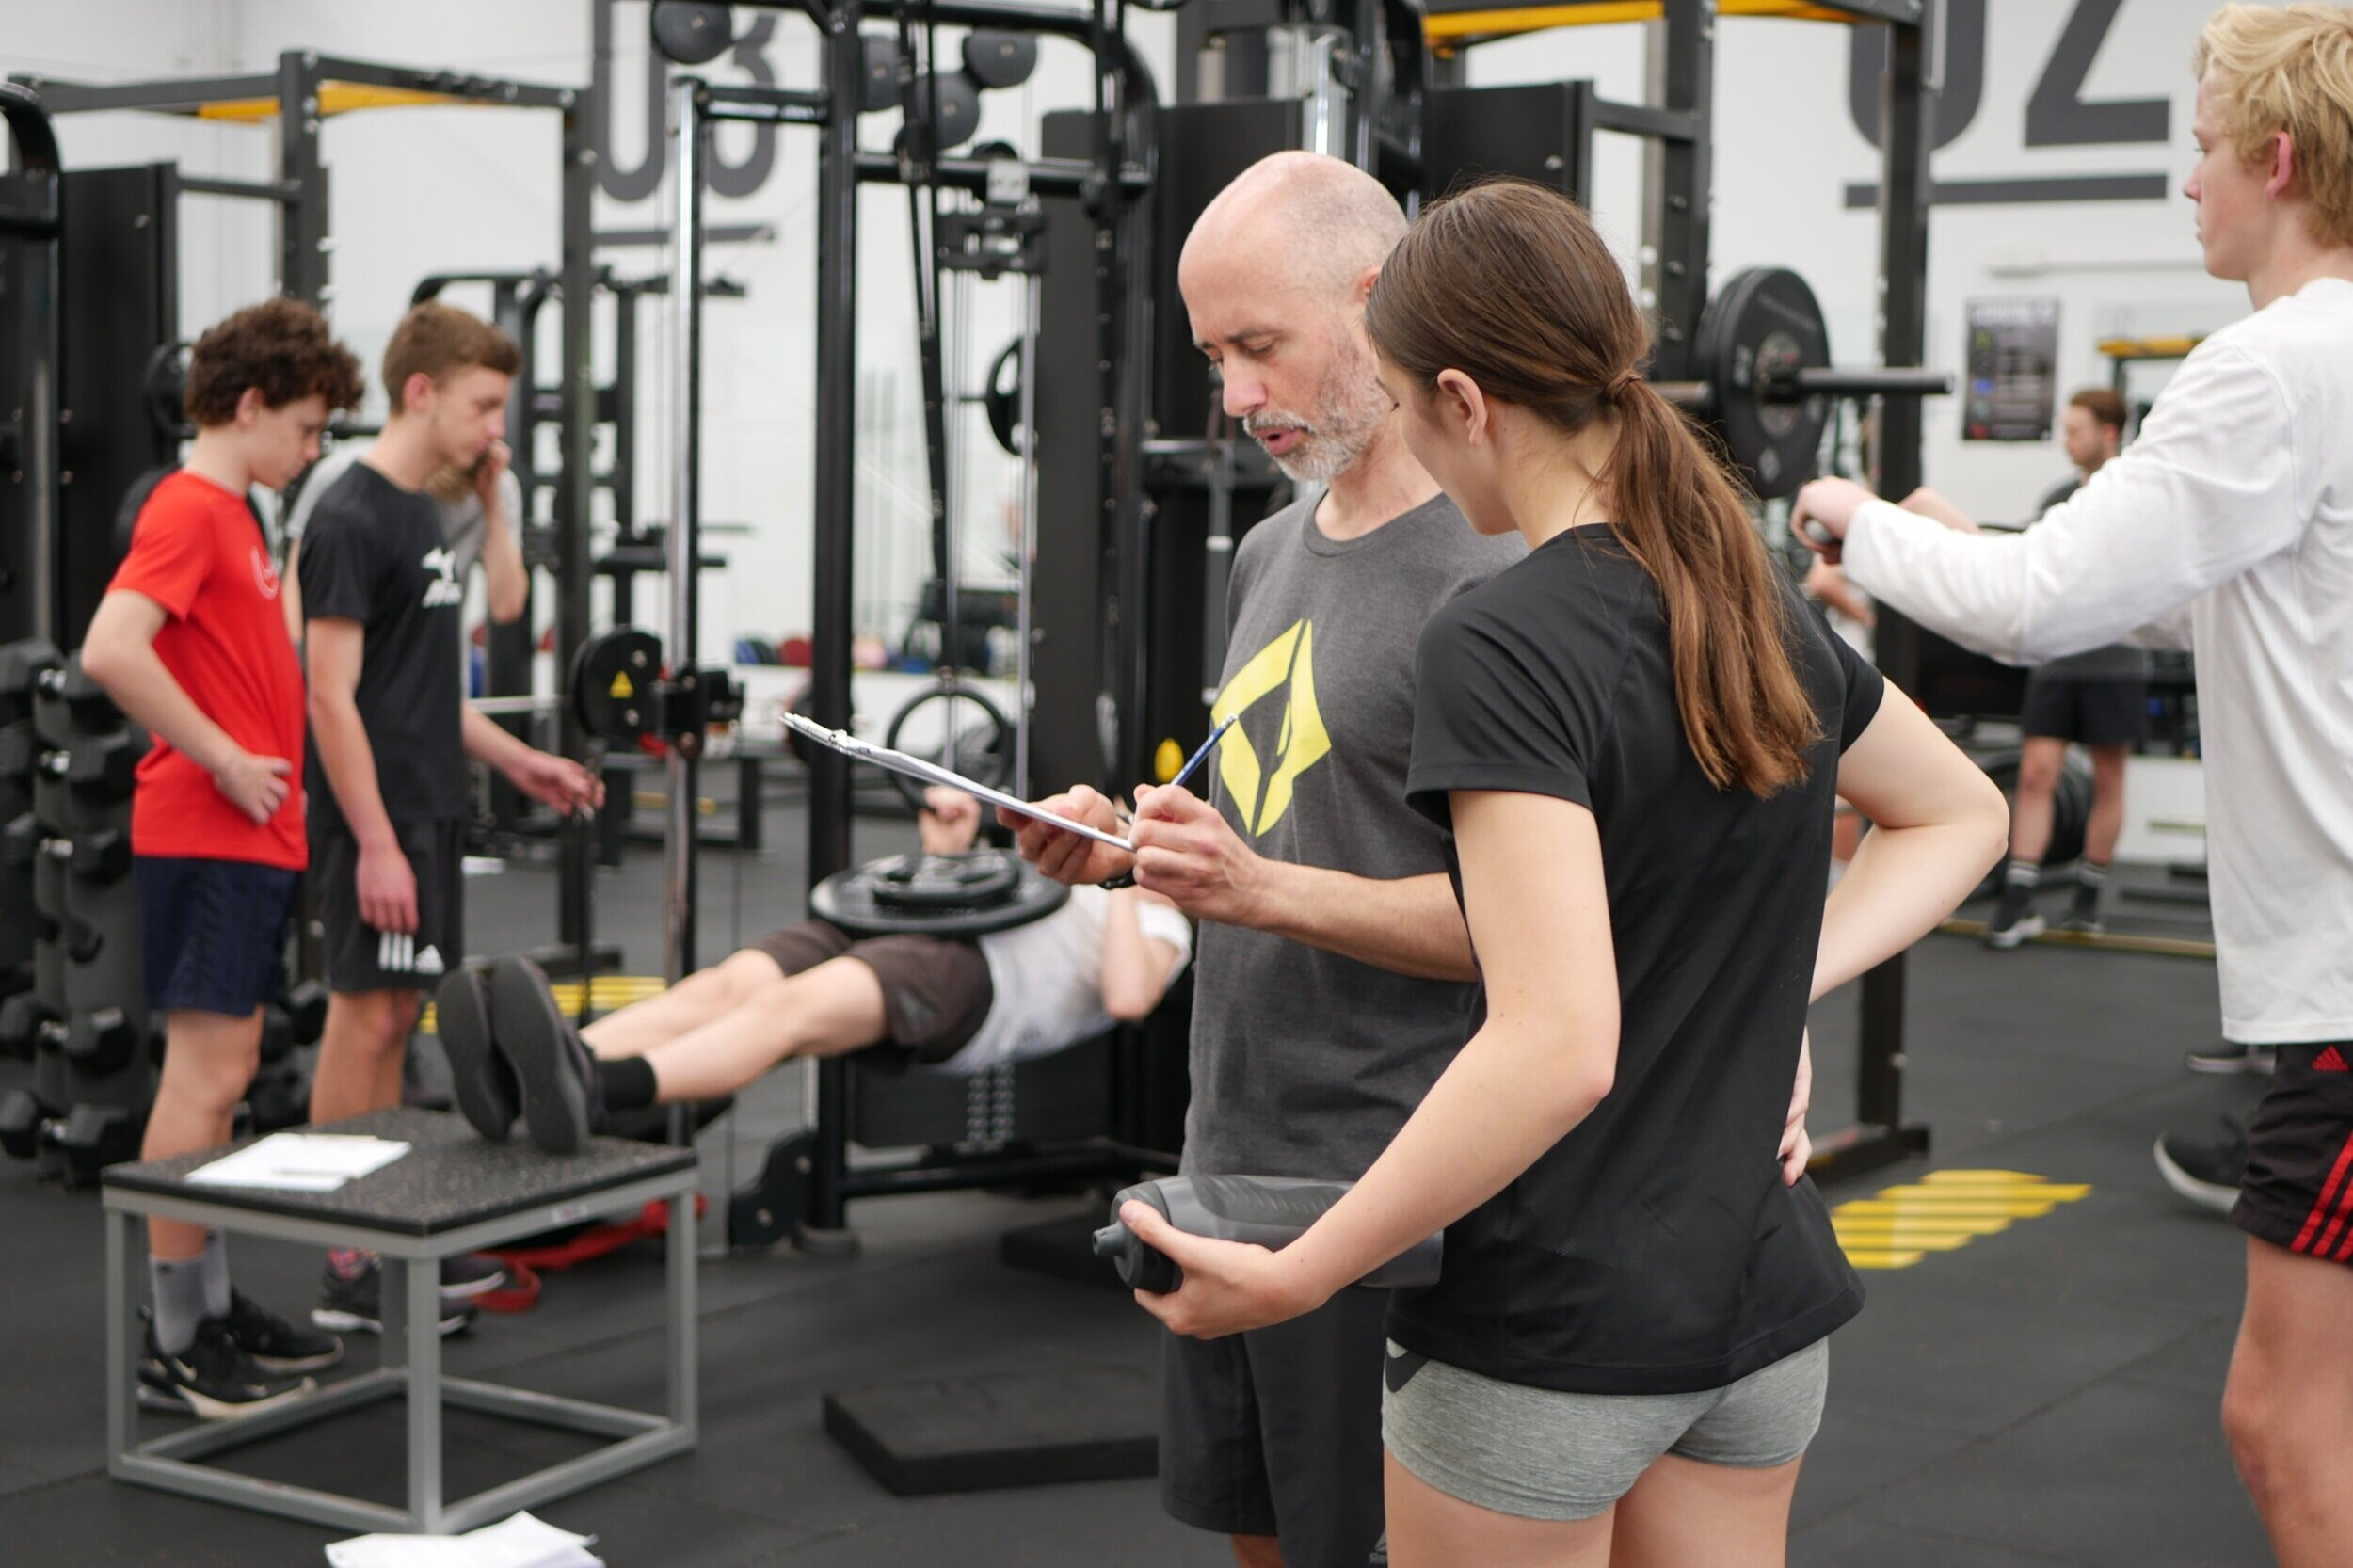 Customised strength and conditioning program - Receive a full customised sport specific strength and conditioning program based on your assessment results, unique biomechanics and goals.